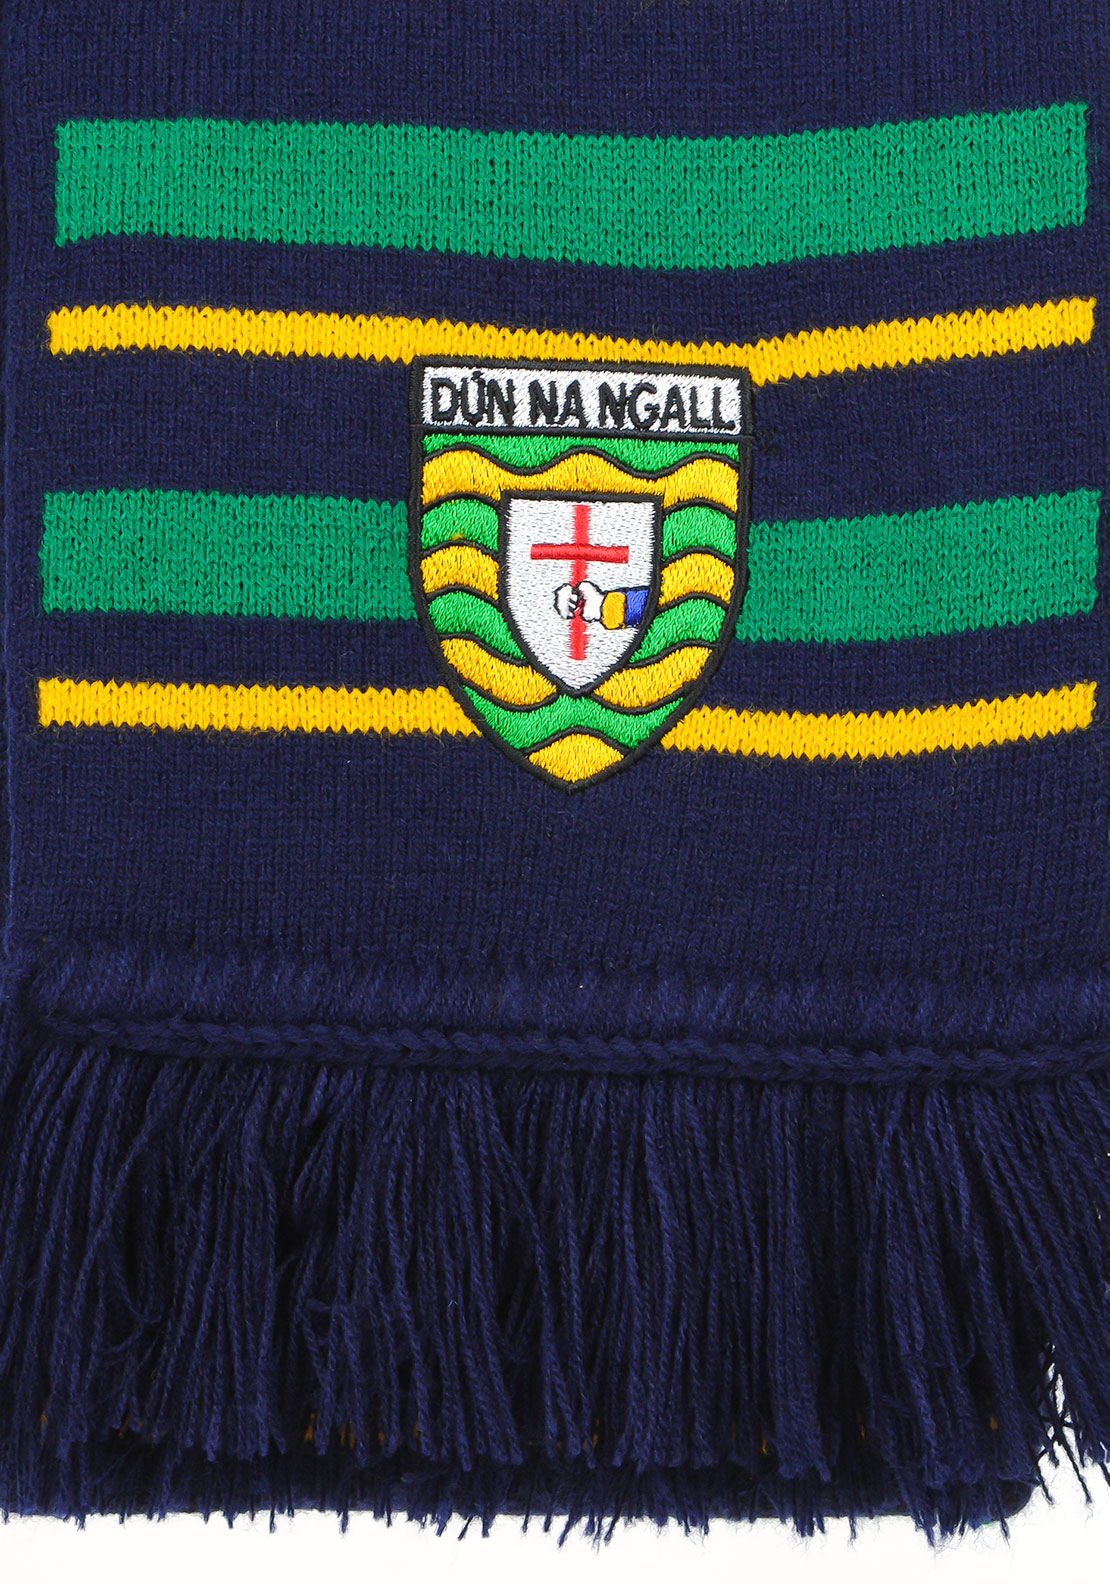 Introsports Ltd Donegal GAA County Scarf, Green